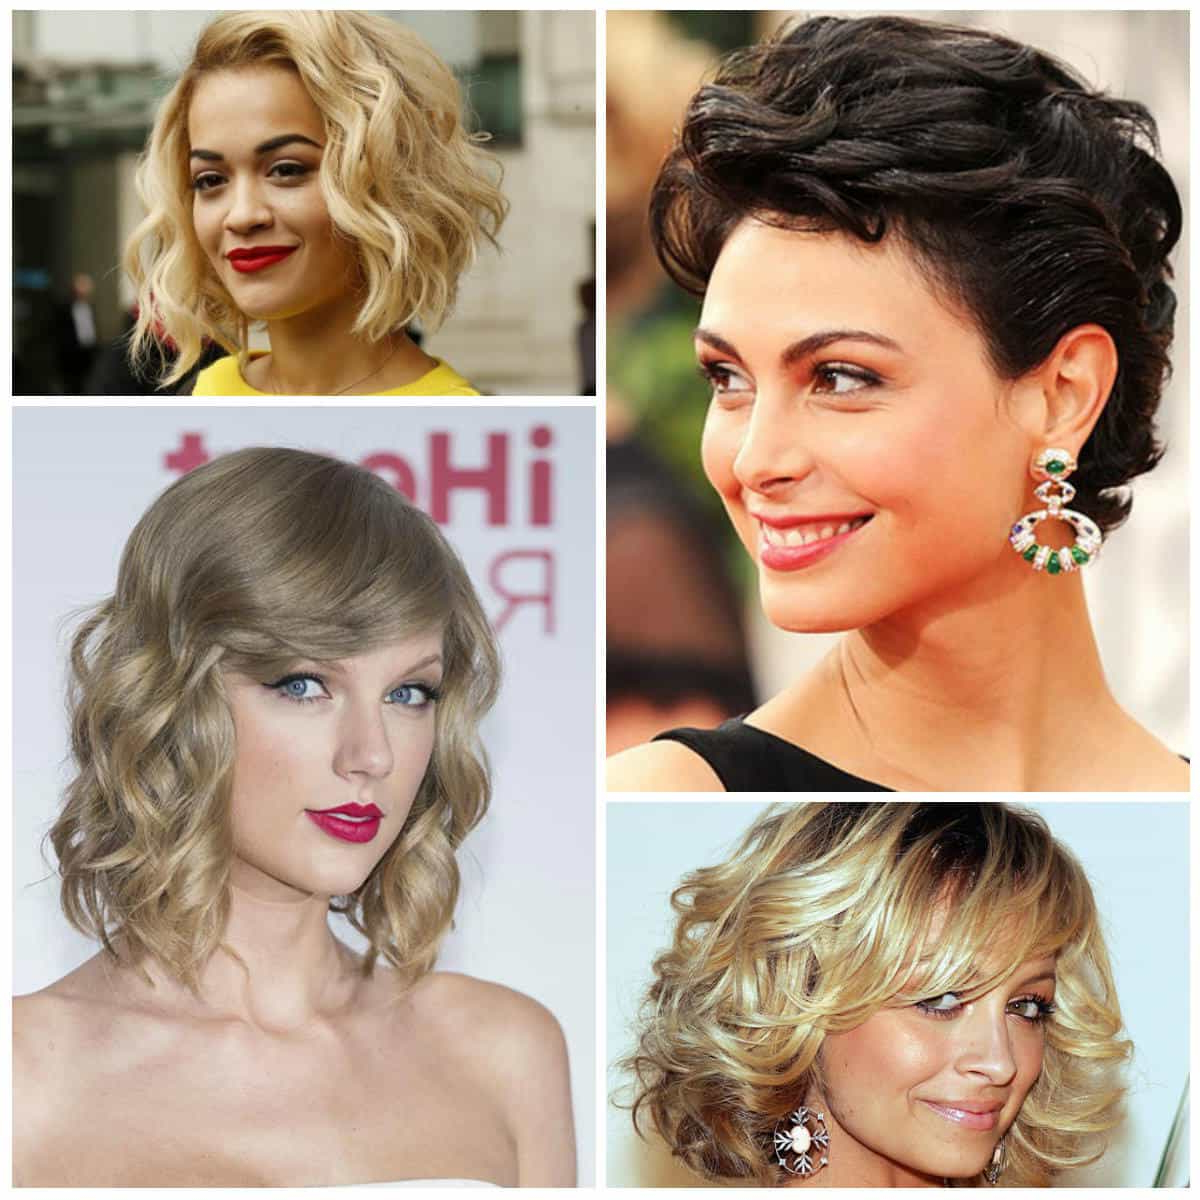 Short Curly Haircuts 2018 – 2019 – Short And Cuts Hairstyles With Regard To Short Curly Hairstyles (View 14 of 20)